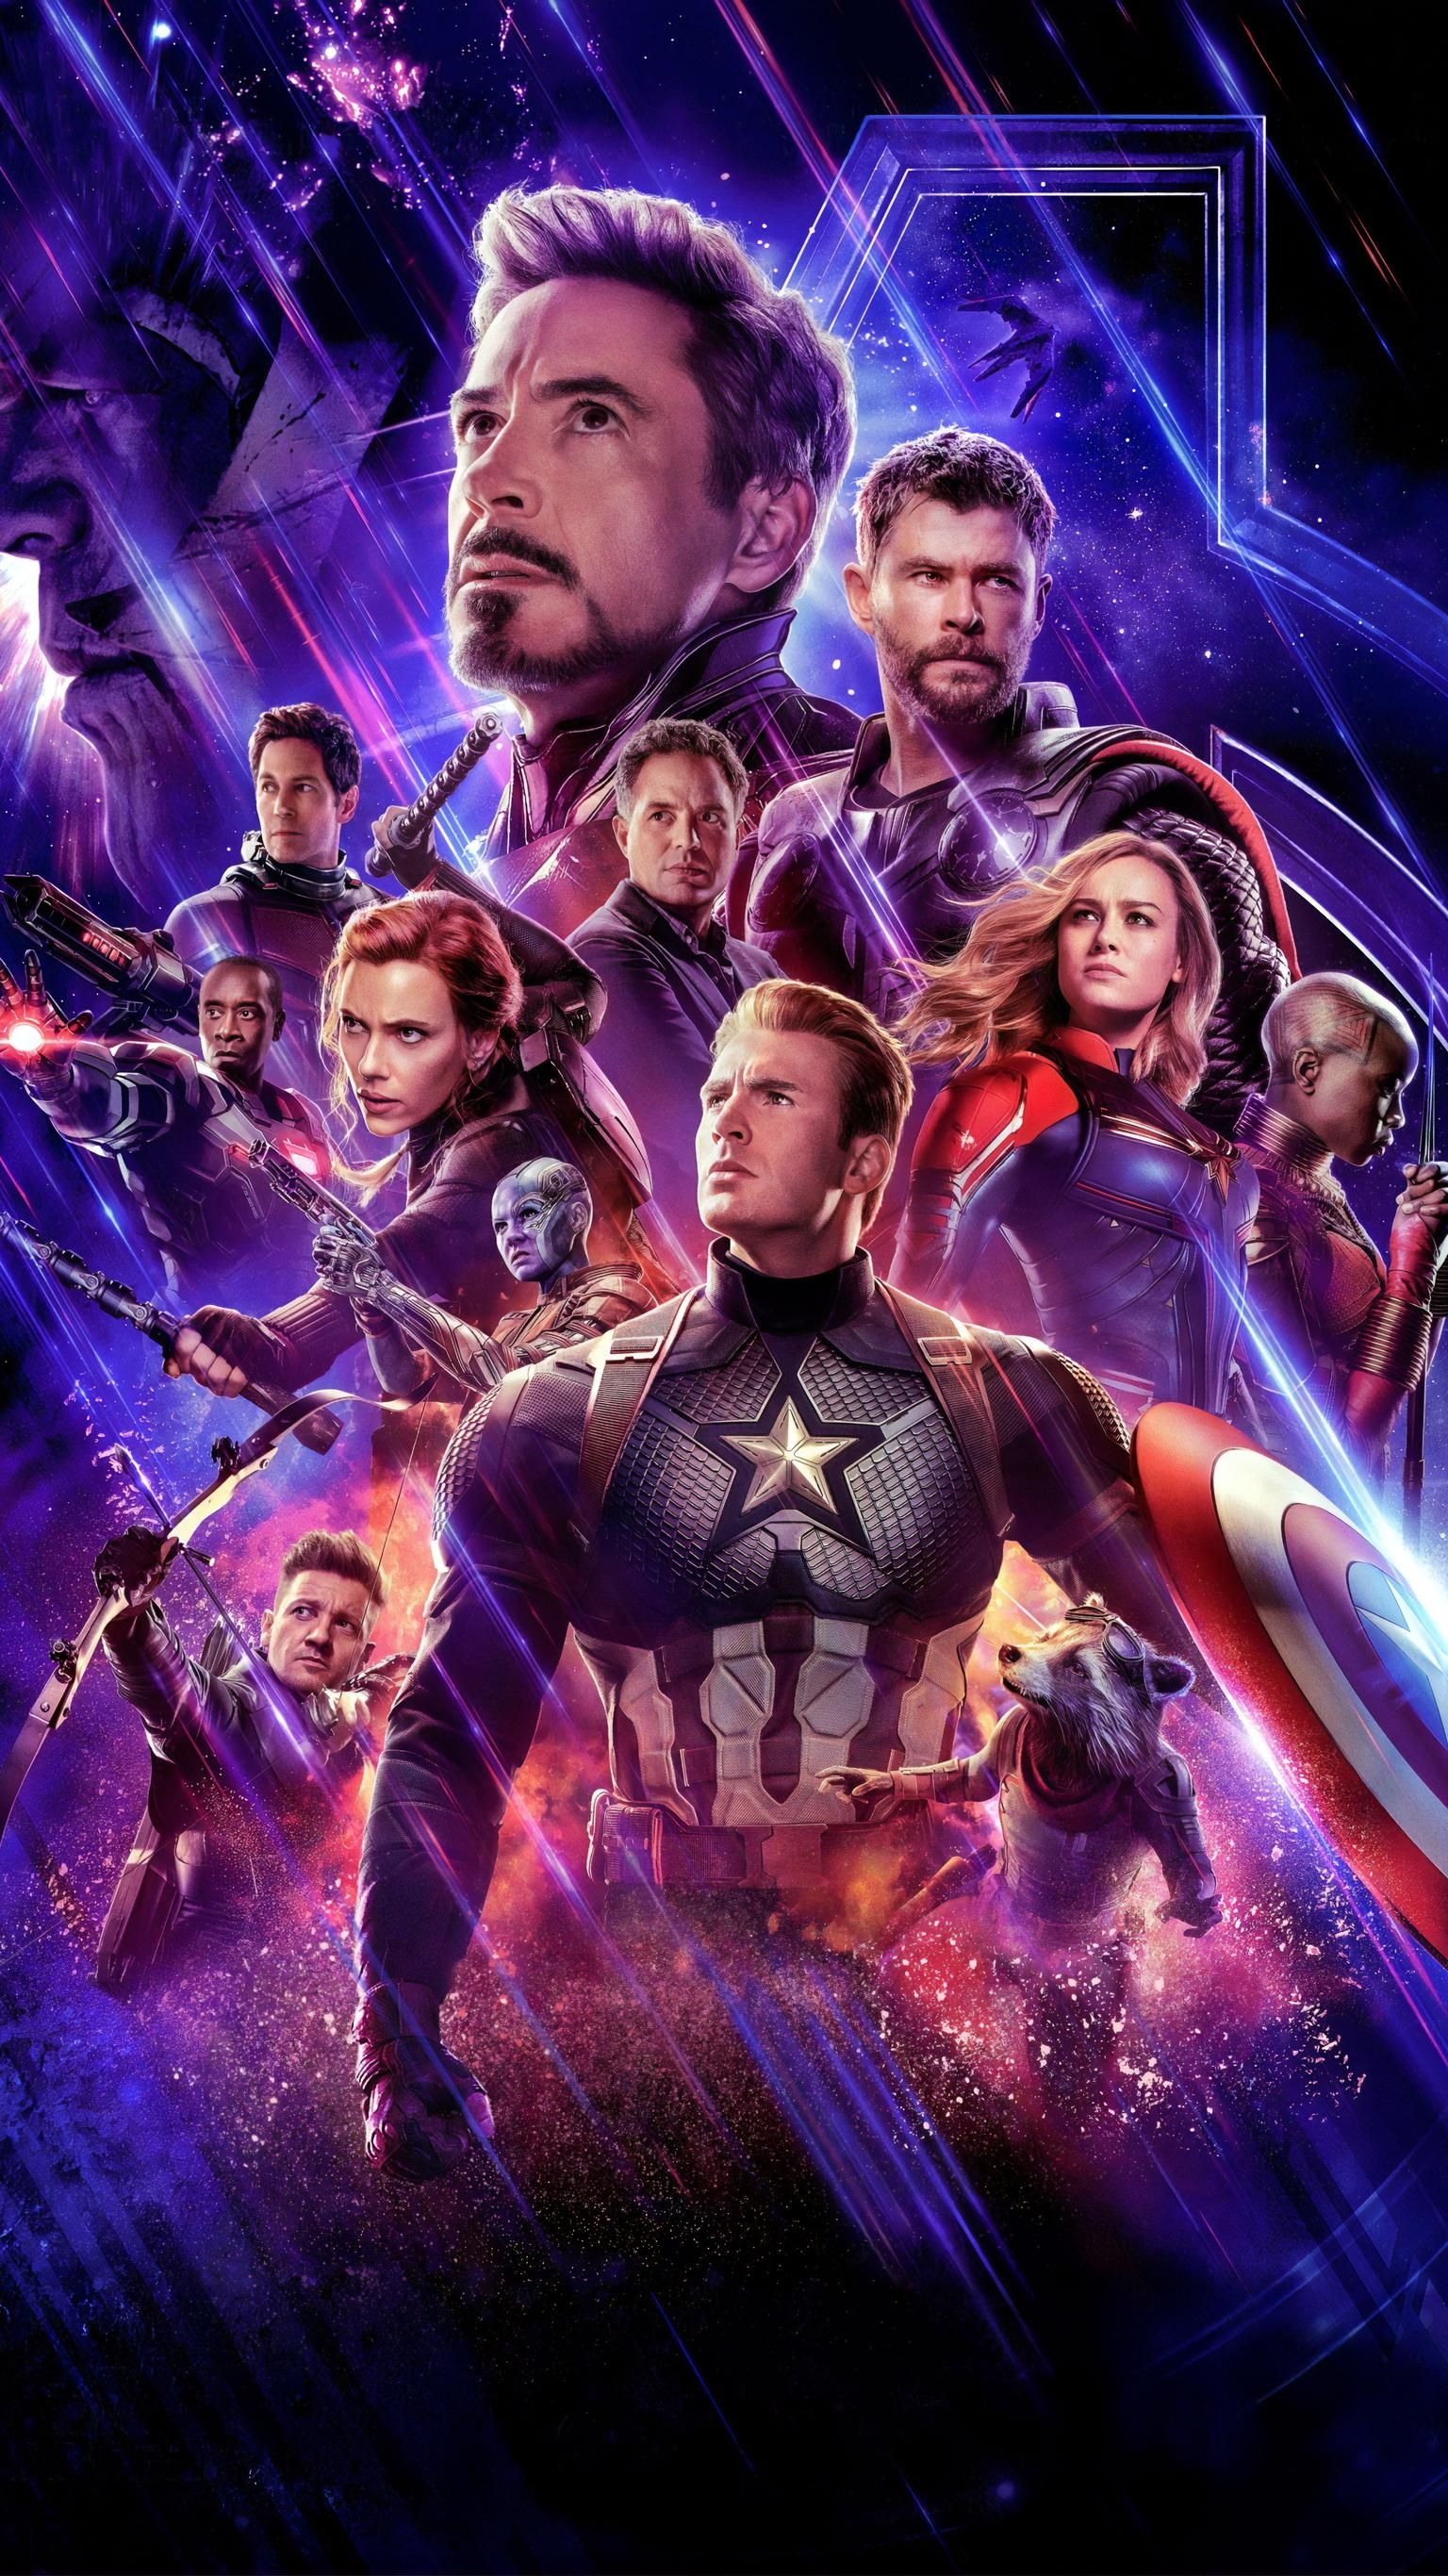 Avengers Endgame (2019) Phone Wallpaper